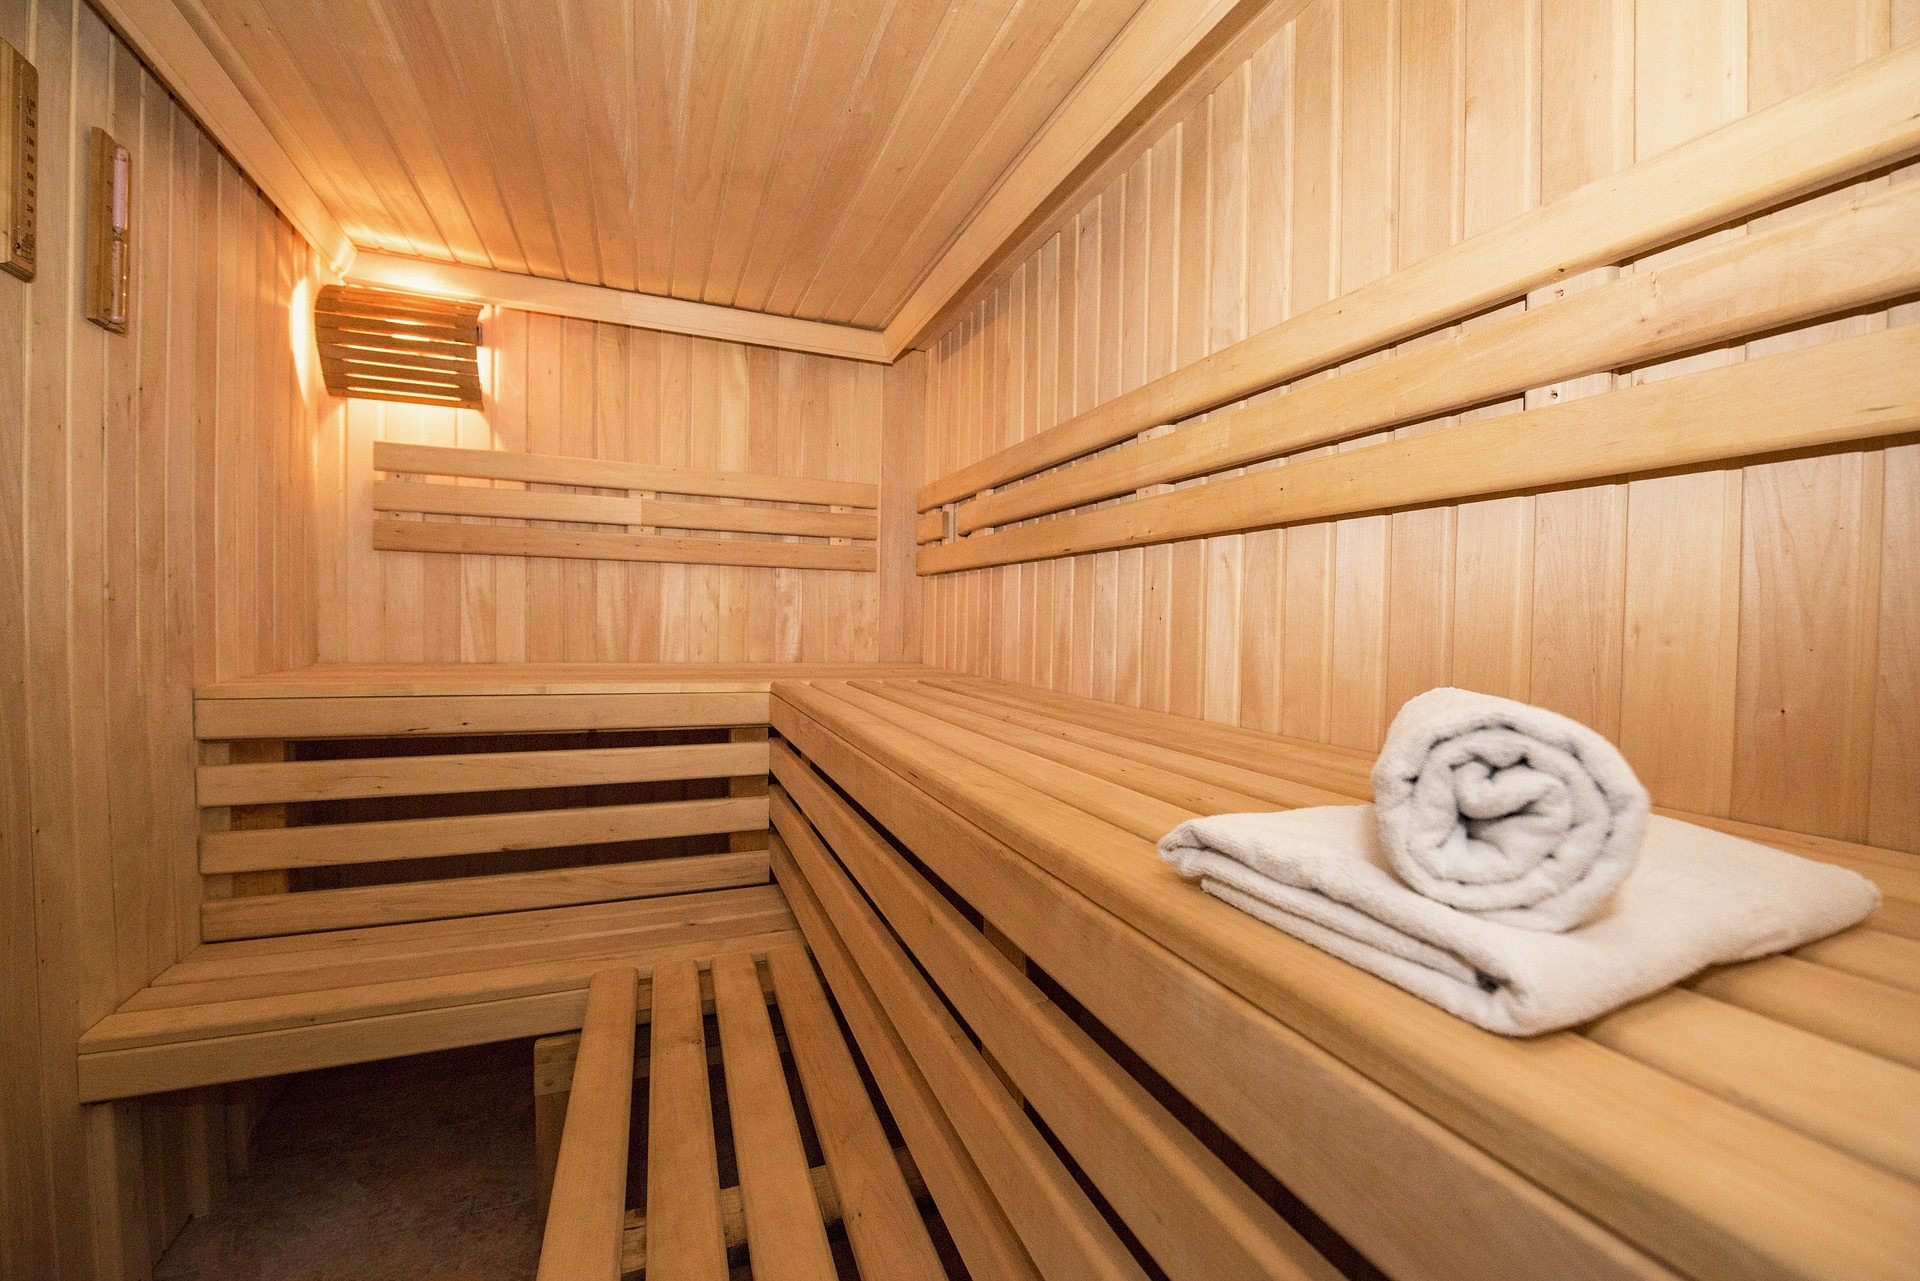 Im going to the sauna for the first time. What should I bring with me